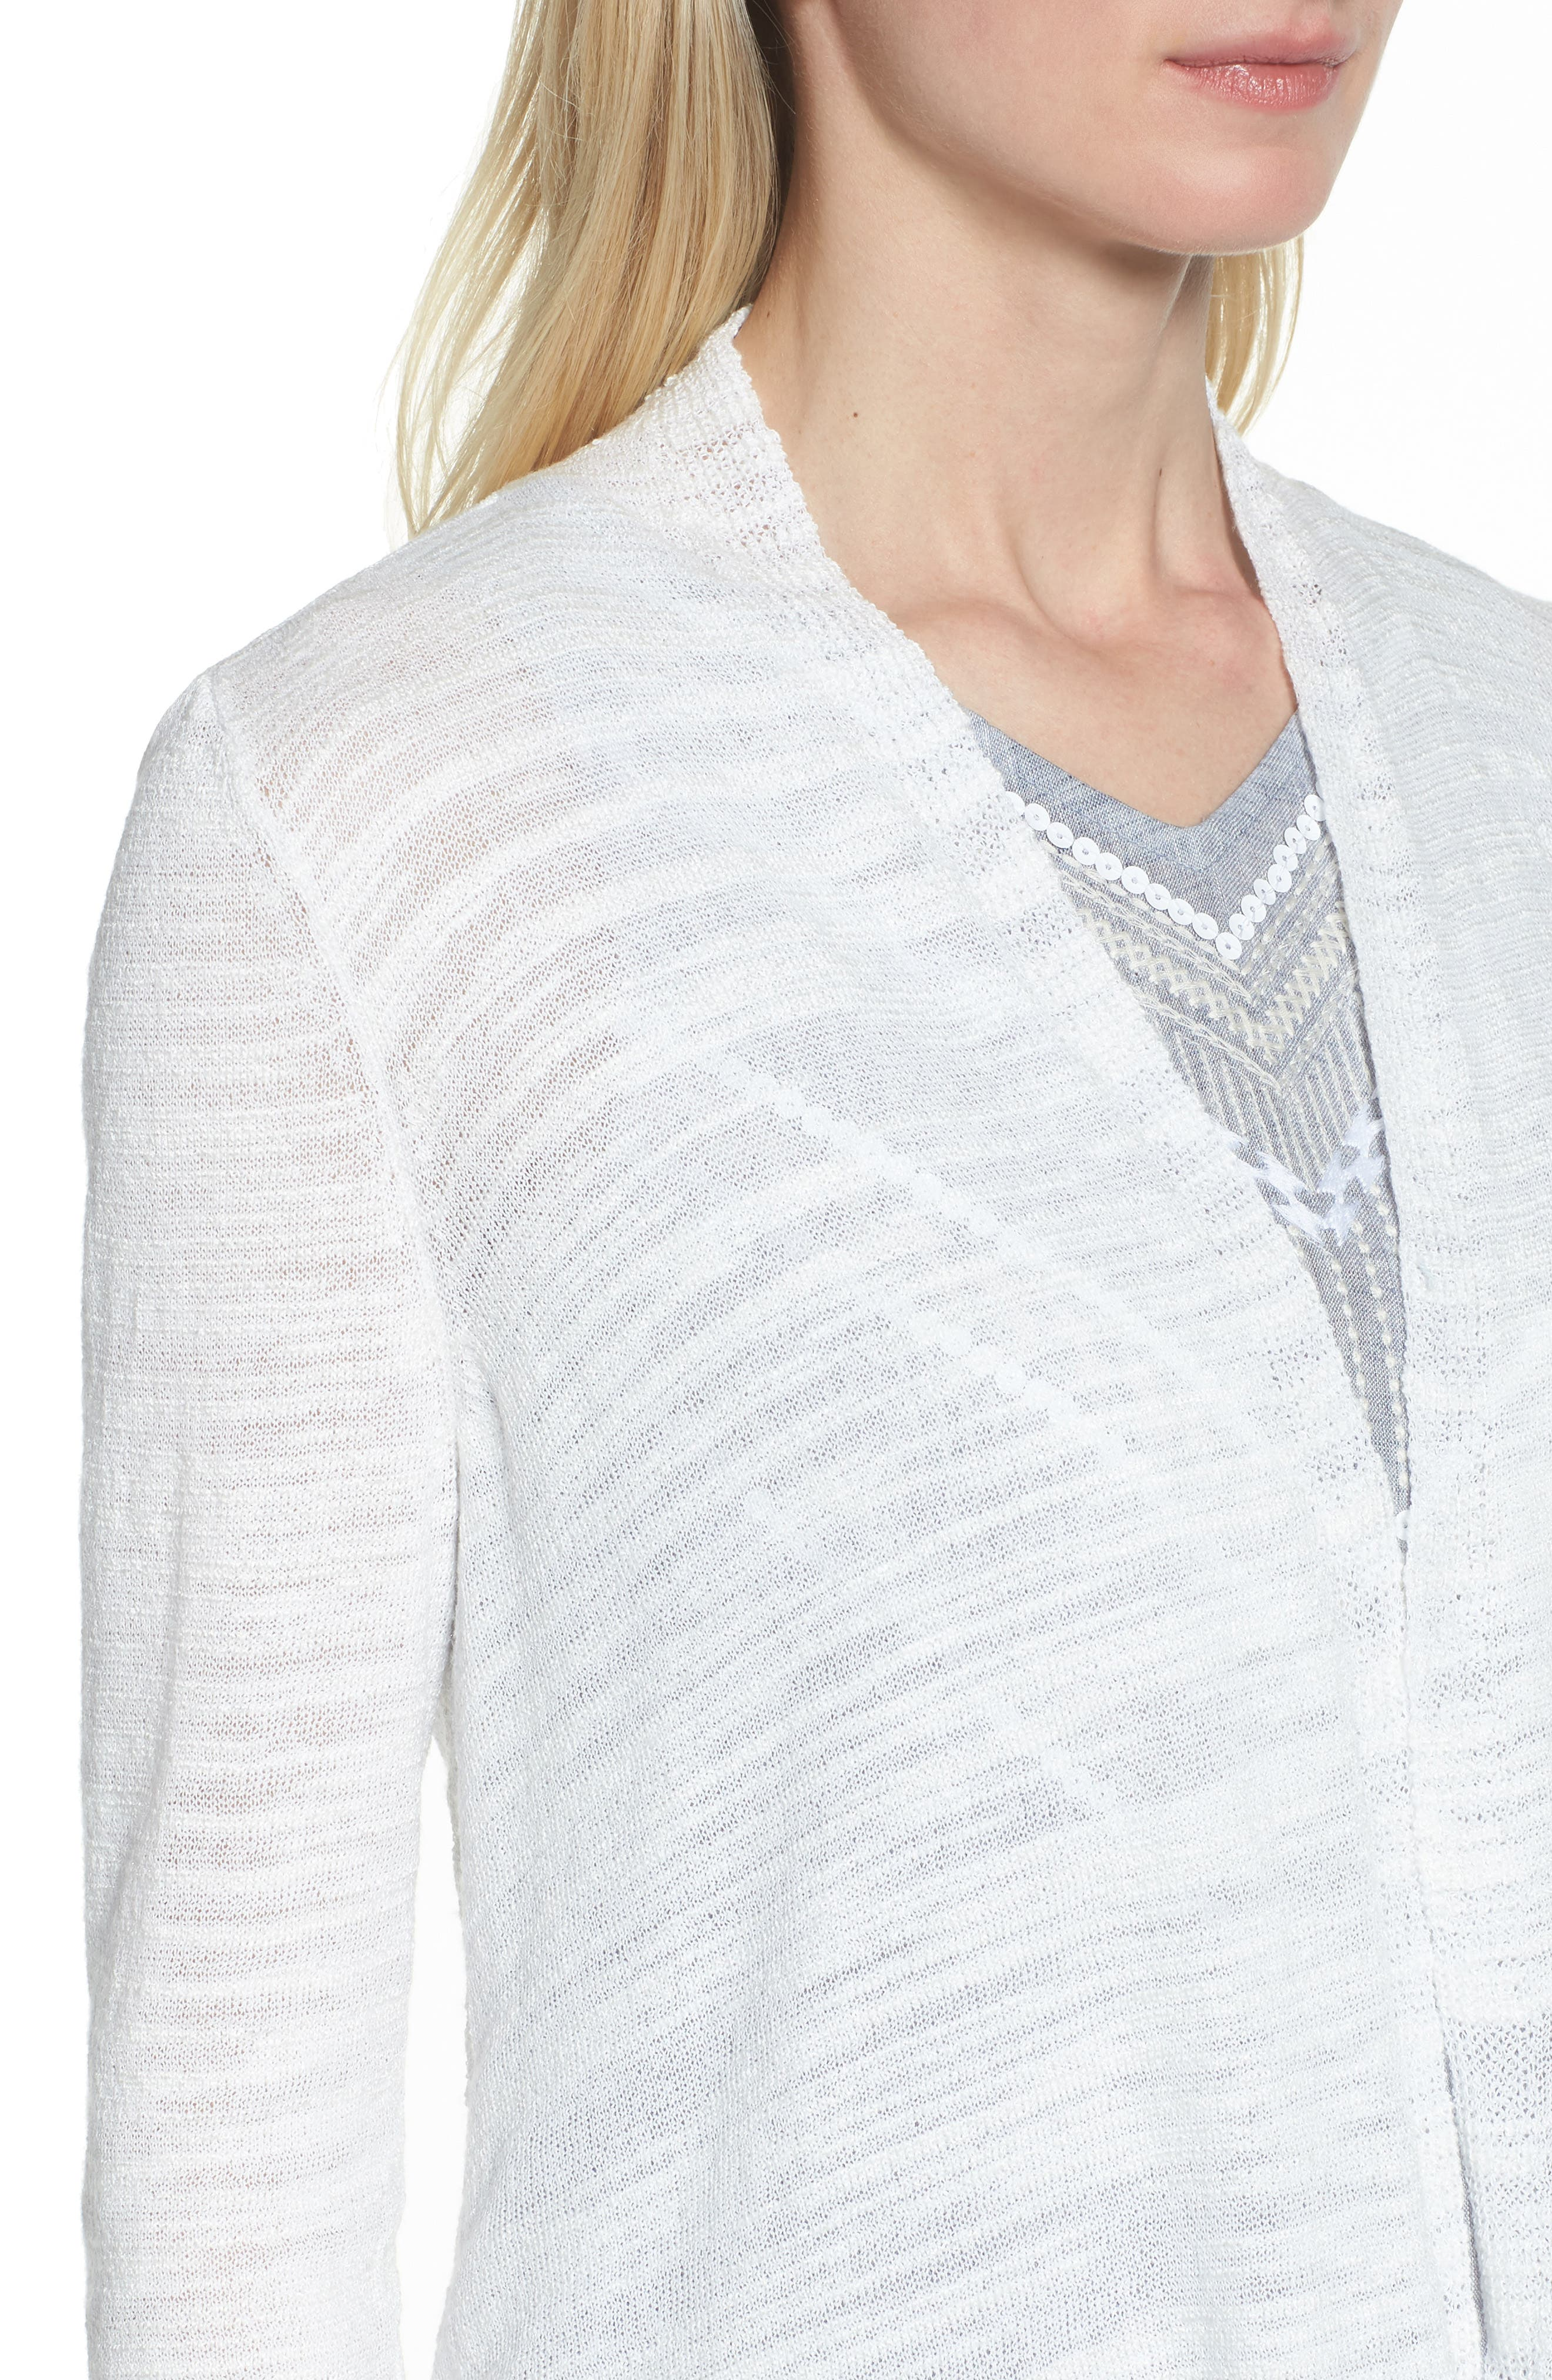 Cliff Dive Cardigan,                             Alternate thumbnail 4, color,                             123